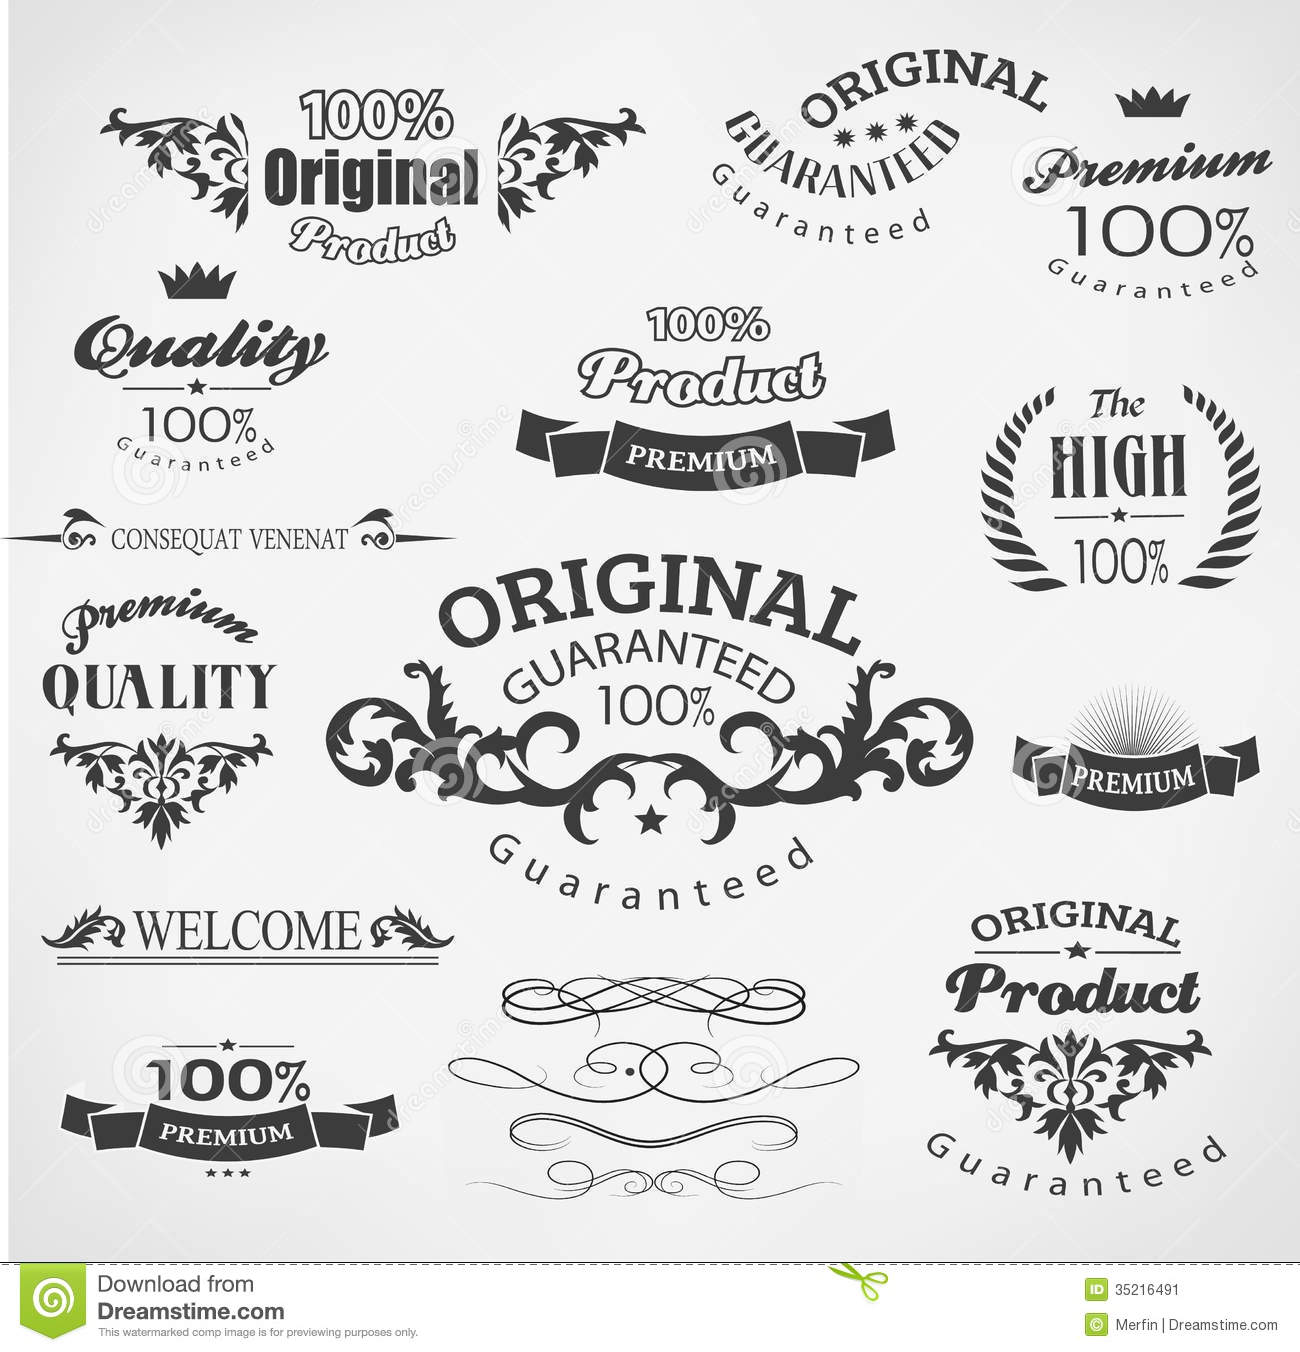 Elements For Design : Vintage design elements stock vector image of calligraphy